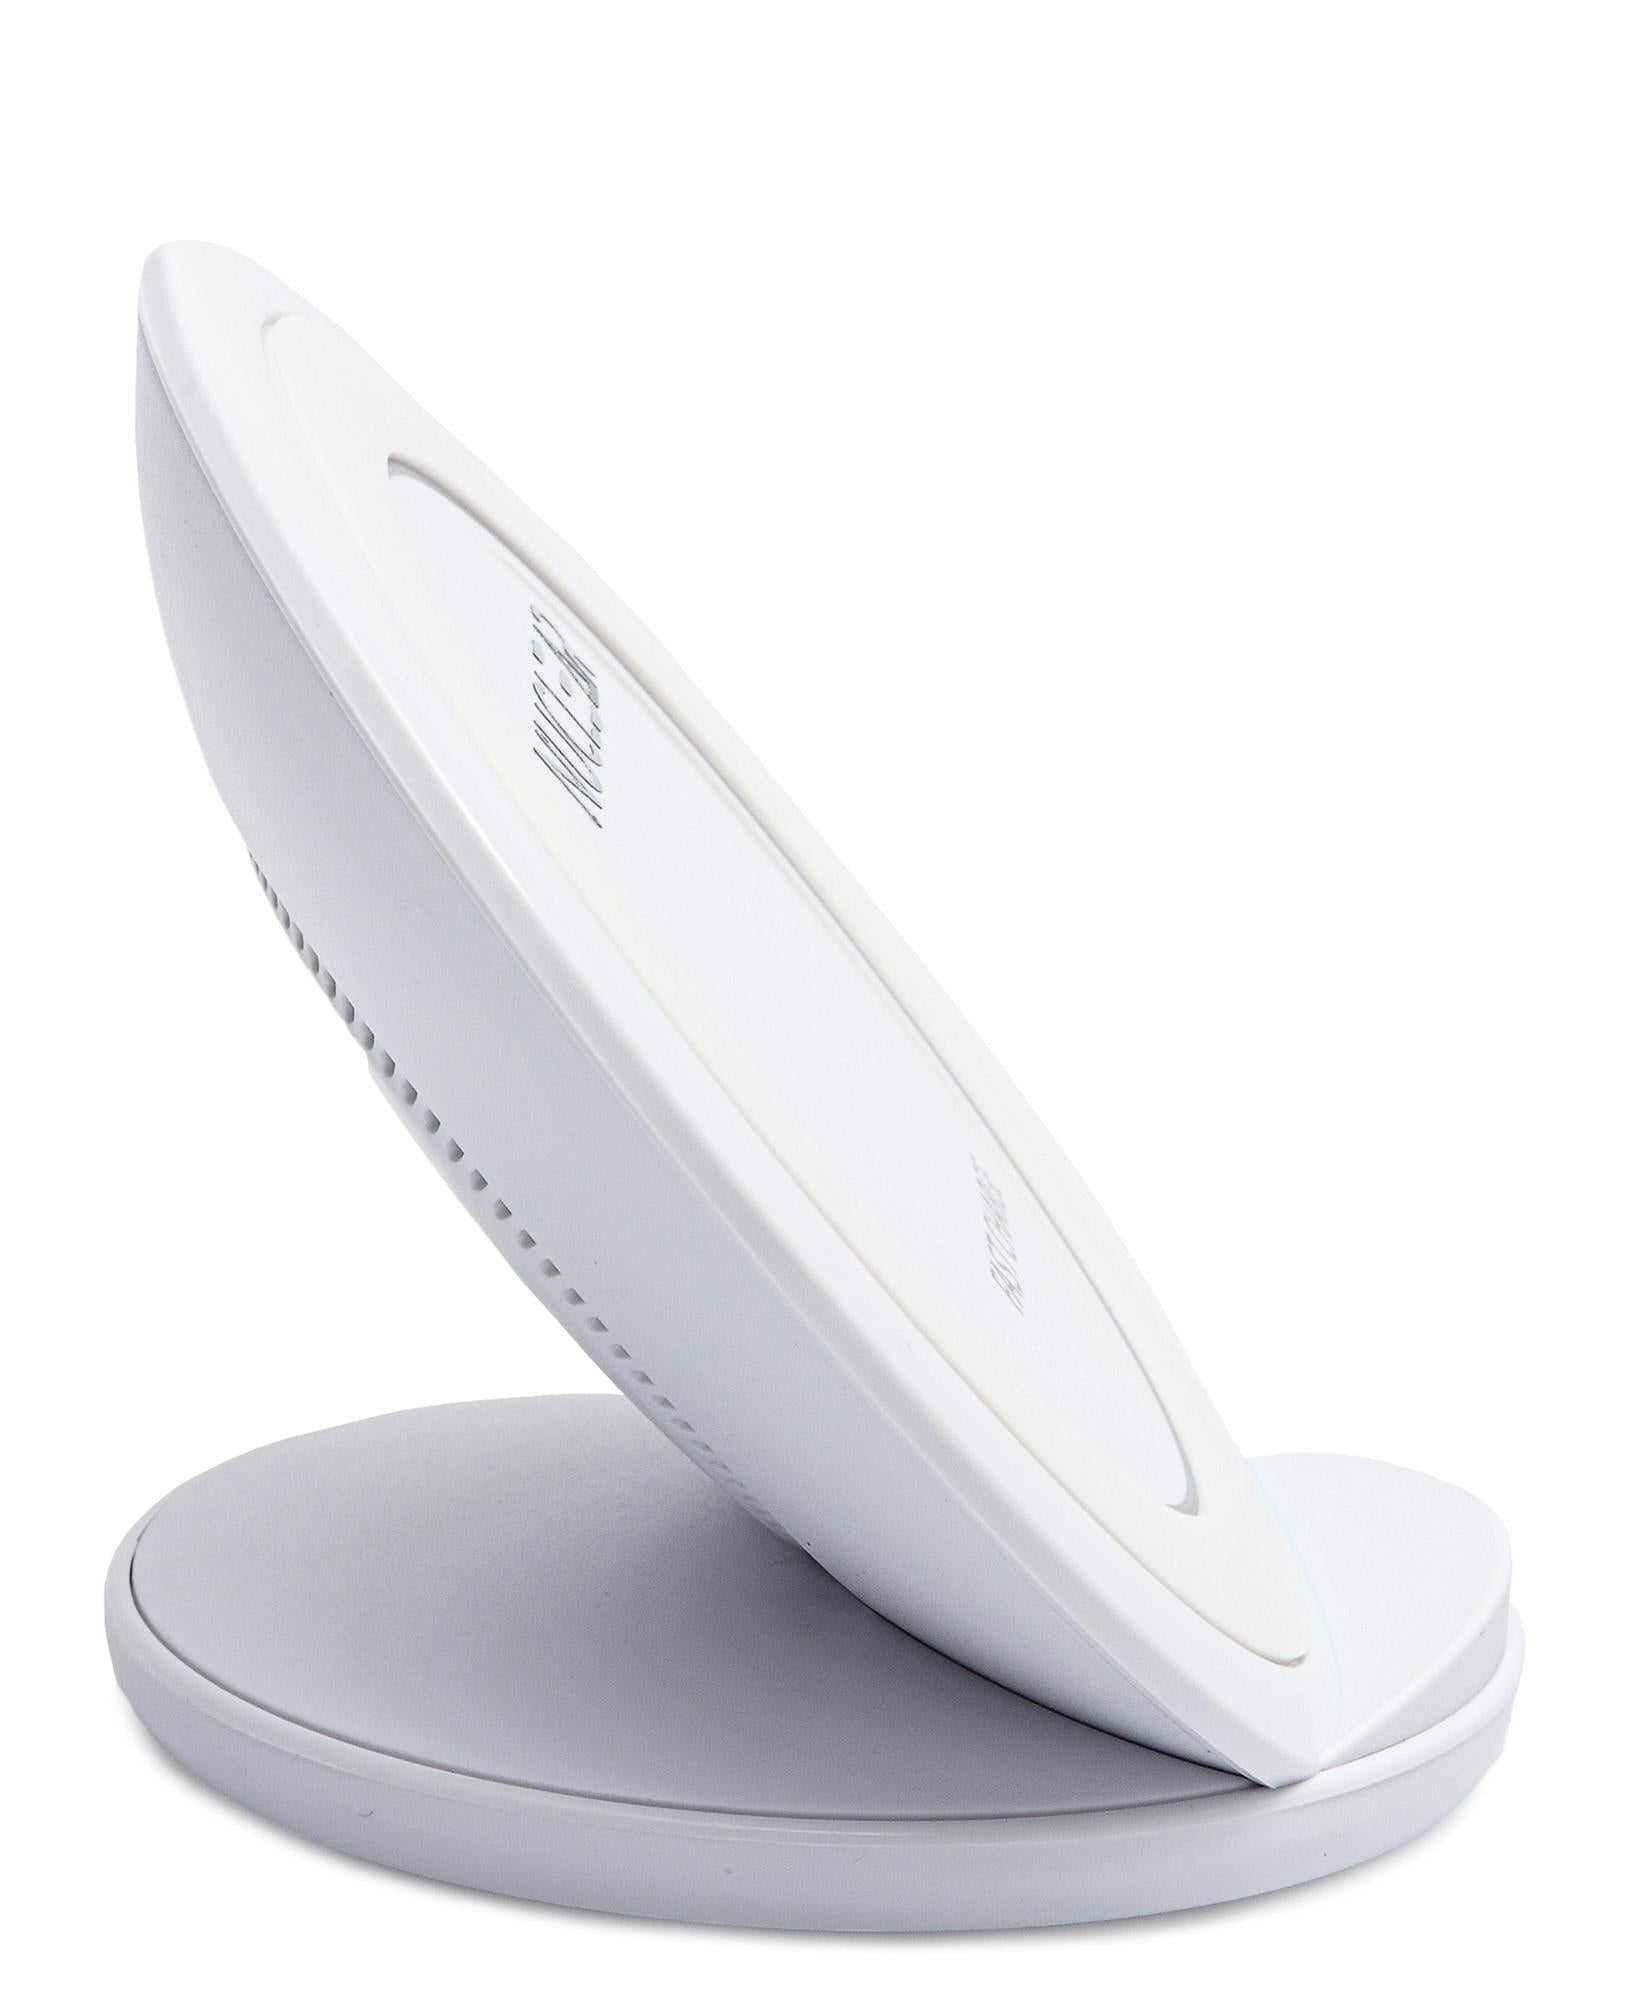 Standing Wireless Charger - White